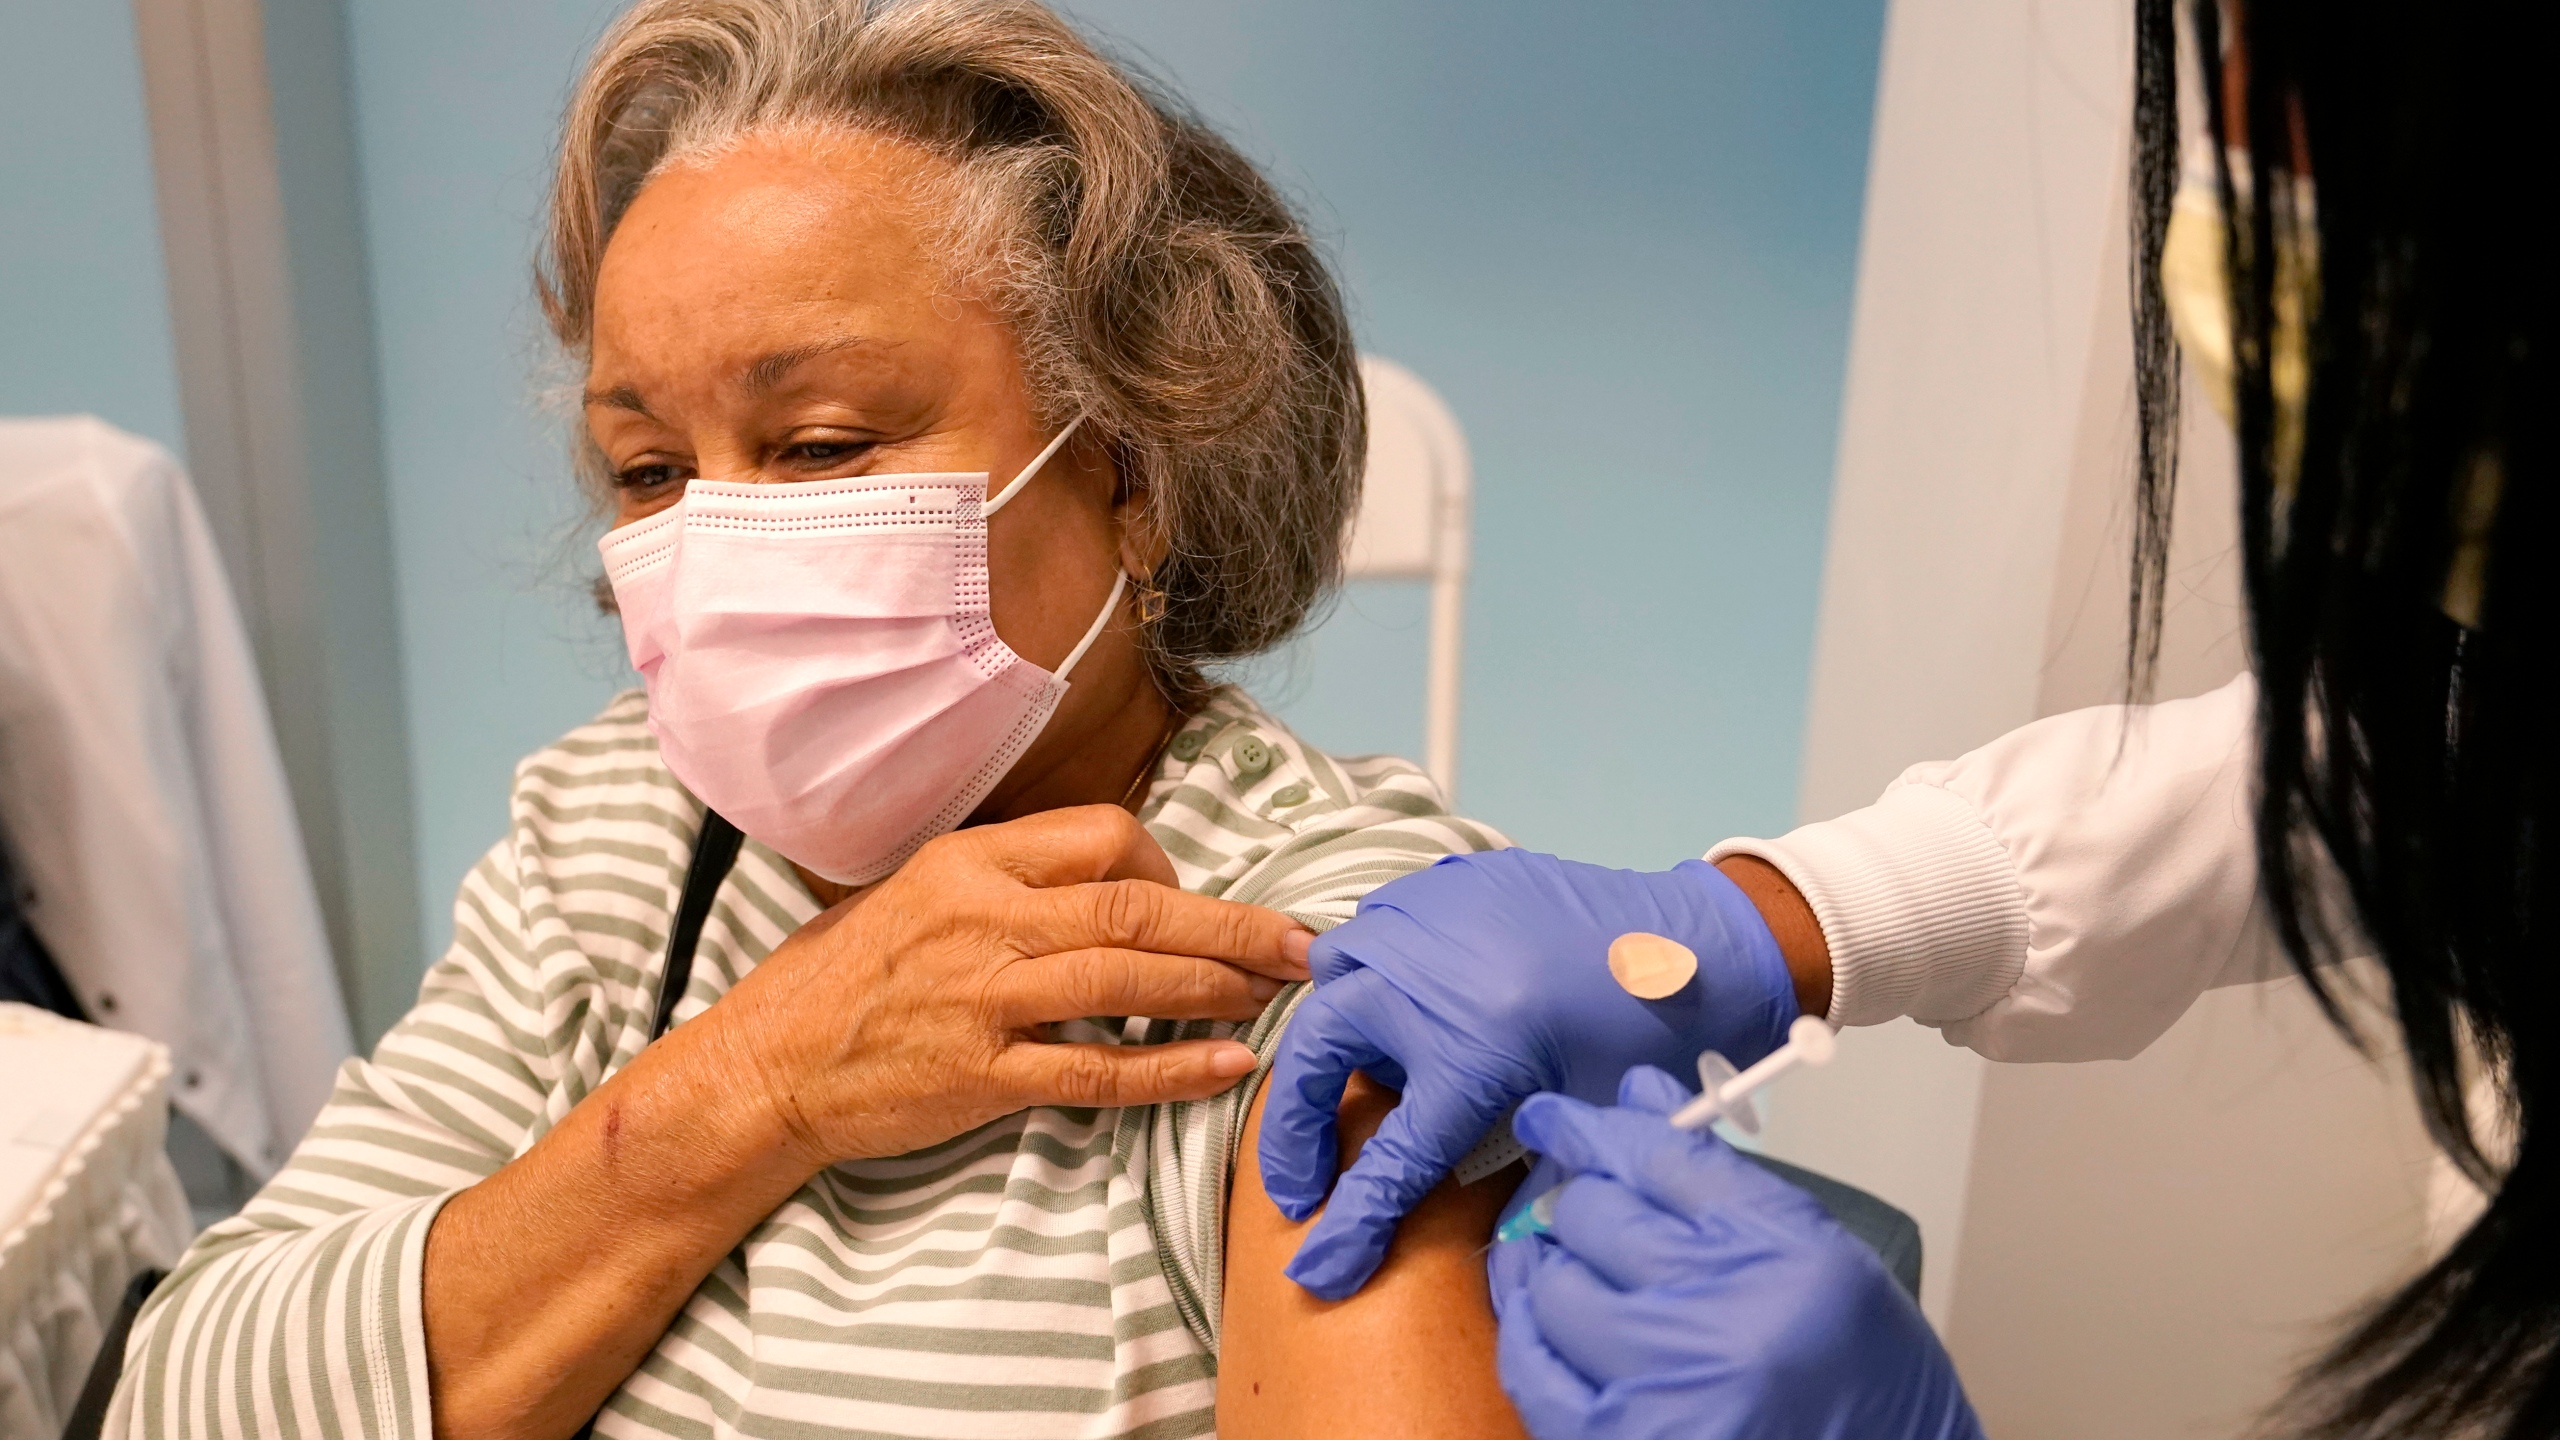 Irma Mesa, 74, receives the Pfizer-BioNTech COVID-19 vaccine at the Jackson Hospital in Miami on Jan. 27, 2021.. (AP Photo/Lynne Sladky, File)